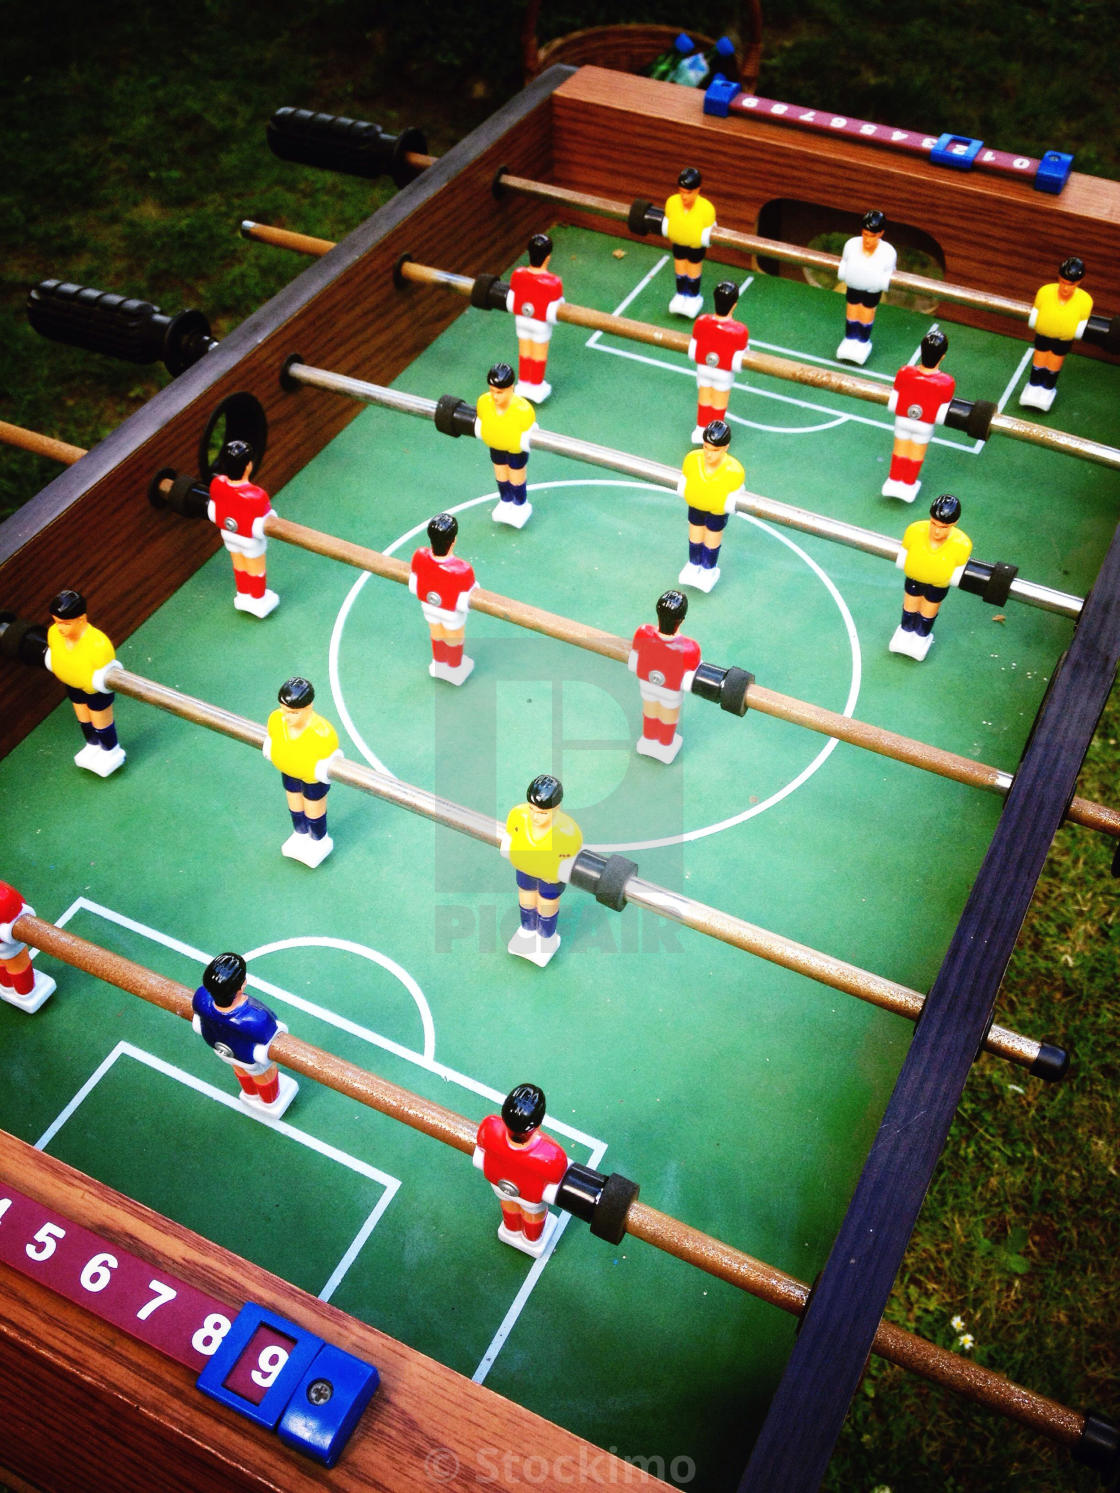 Football Vintage Tisch Fussball Game License Download Or Print For 31 00 Photos Picfair